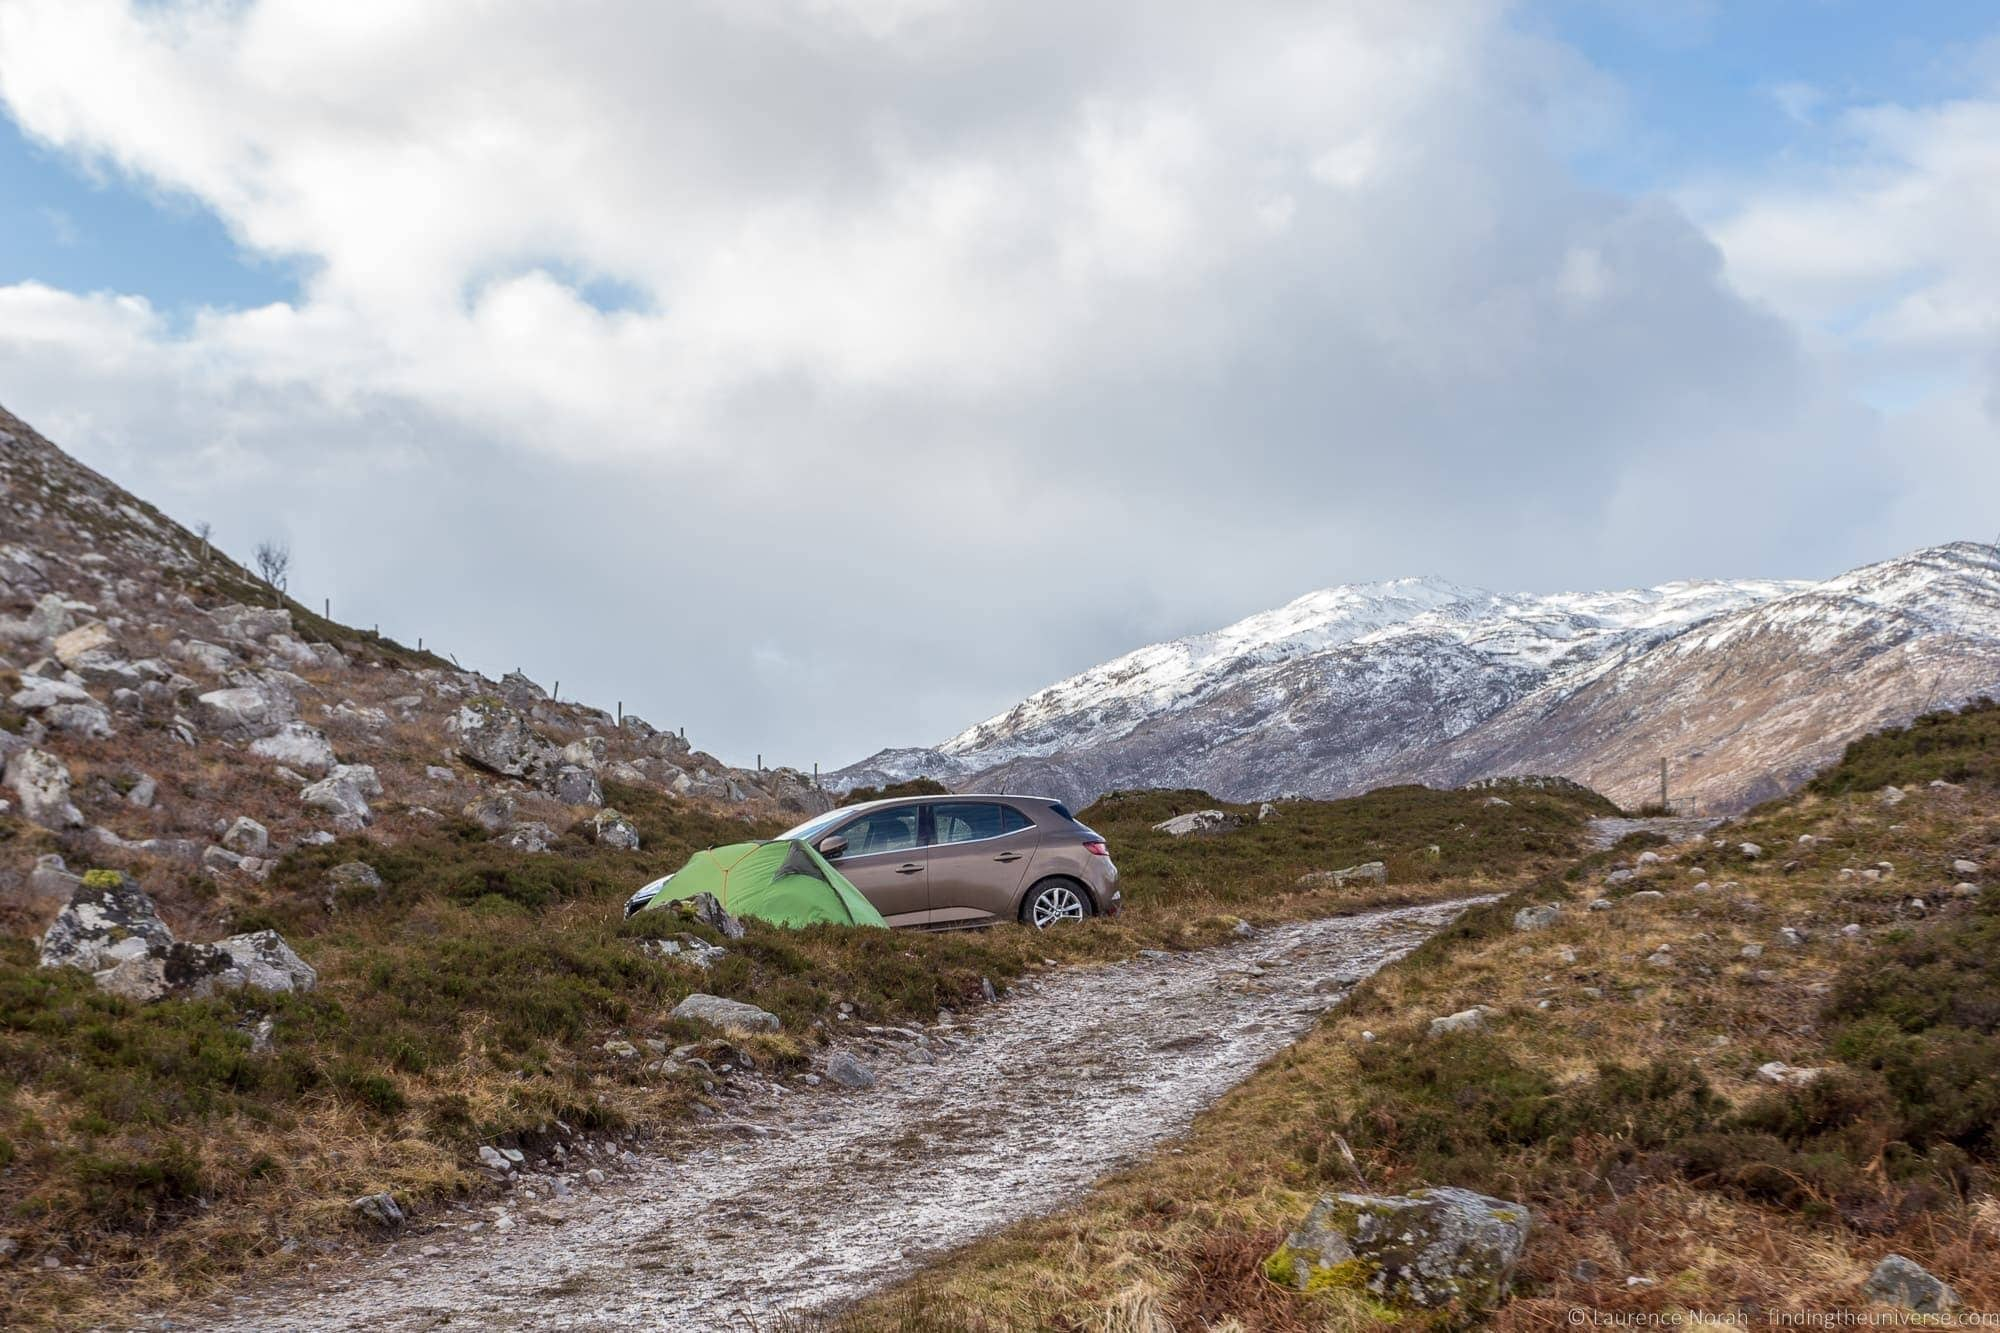 7 Day North Coast 500 Camping Itinerary - Finding the Universe